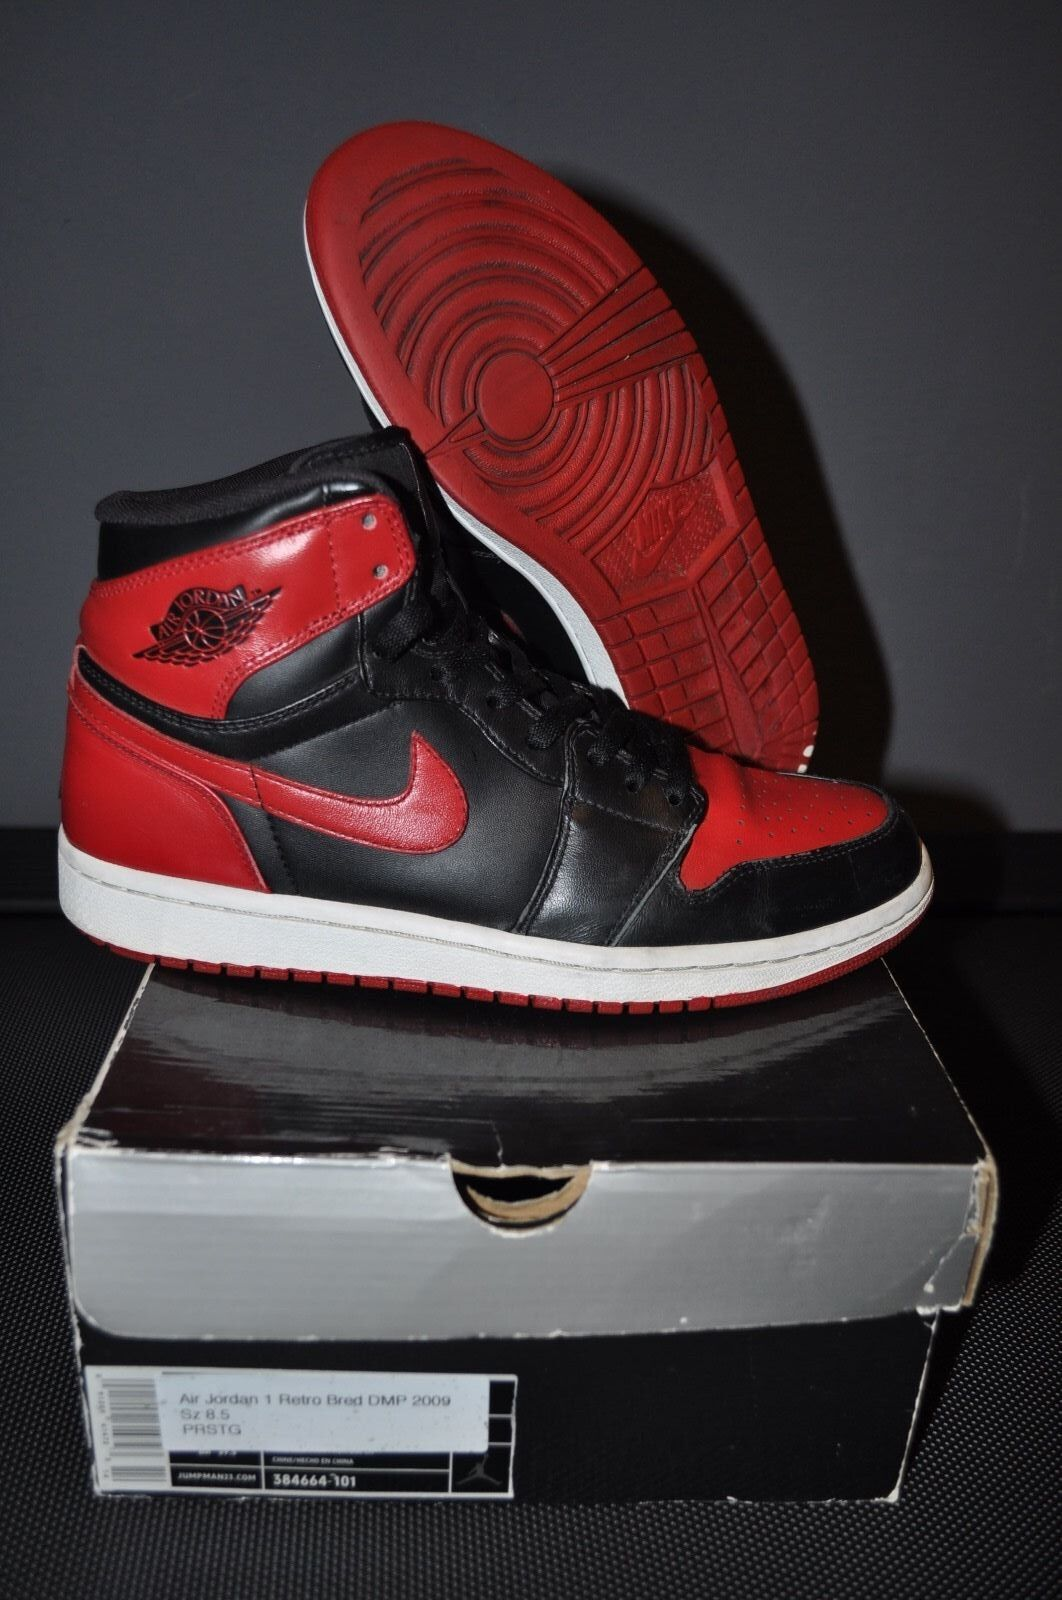 8fea42a575f Nike air jordan retro 1 dmp bred size 8.5 jumpman nqtcnw1630-Athletic Shoes